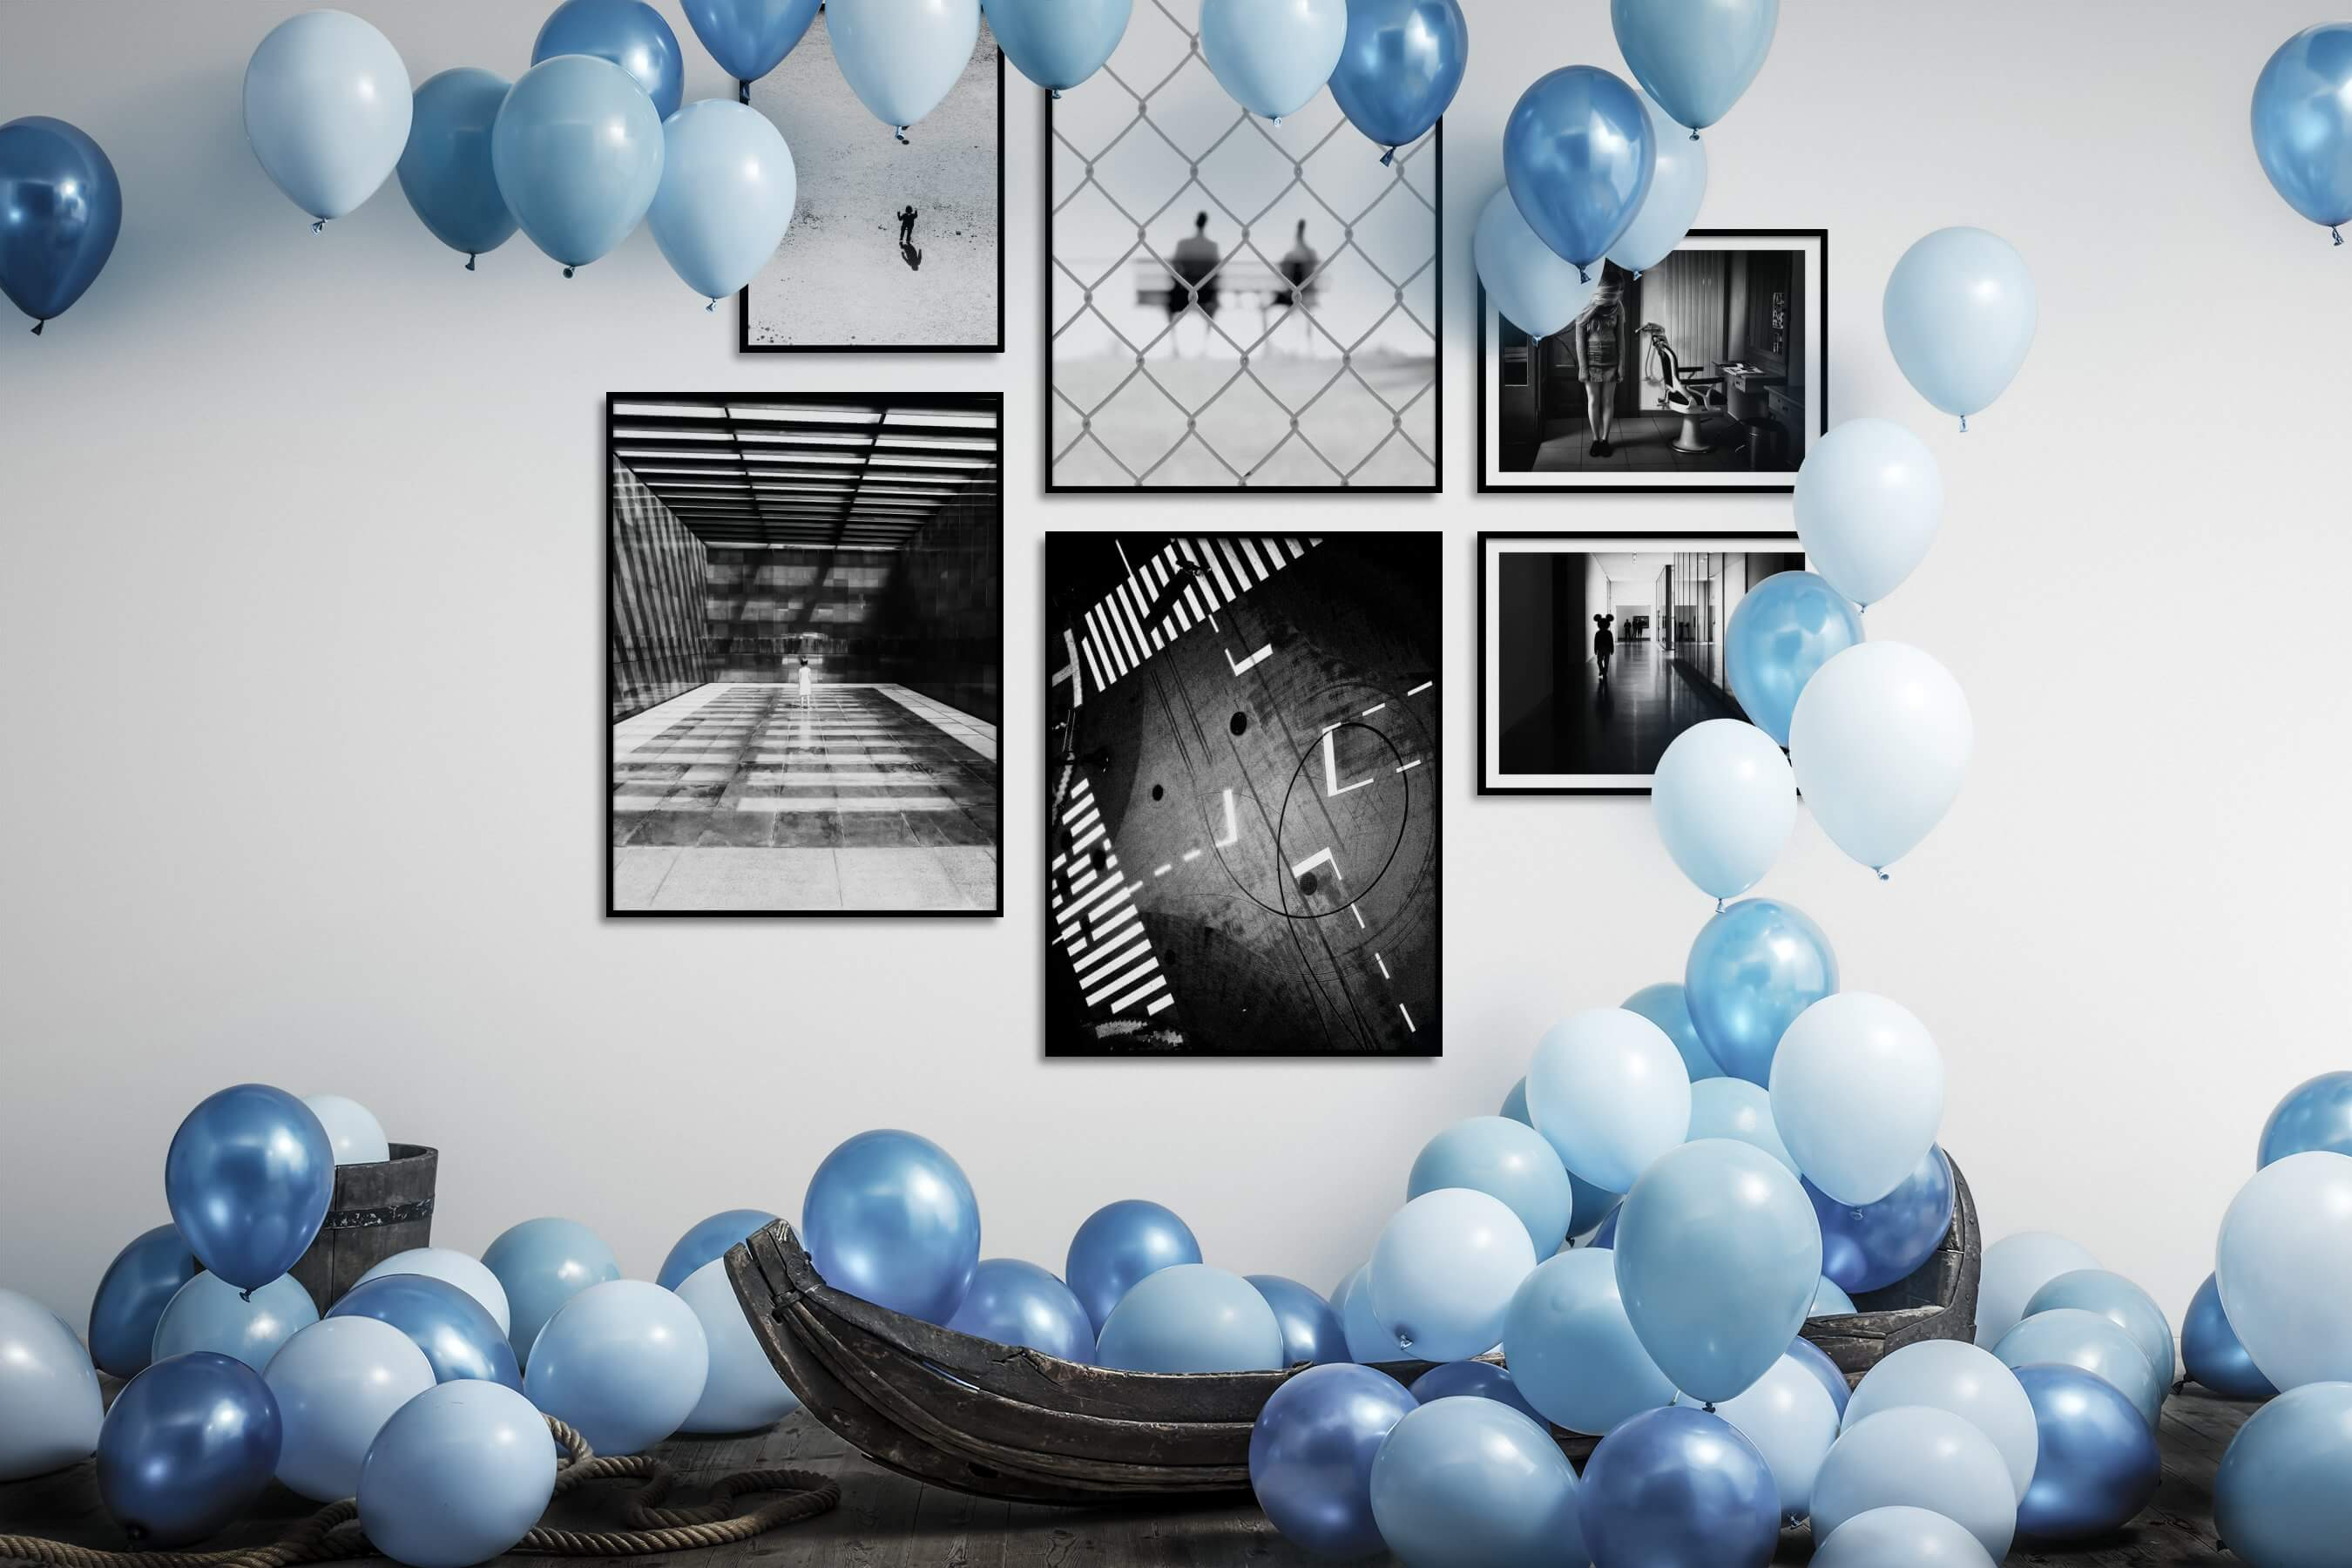 Gallery wall idea with six framed pictures arranged on a wall depicting Black & White, For the Minimalist, For the Moderate, Artsy, and City Life